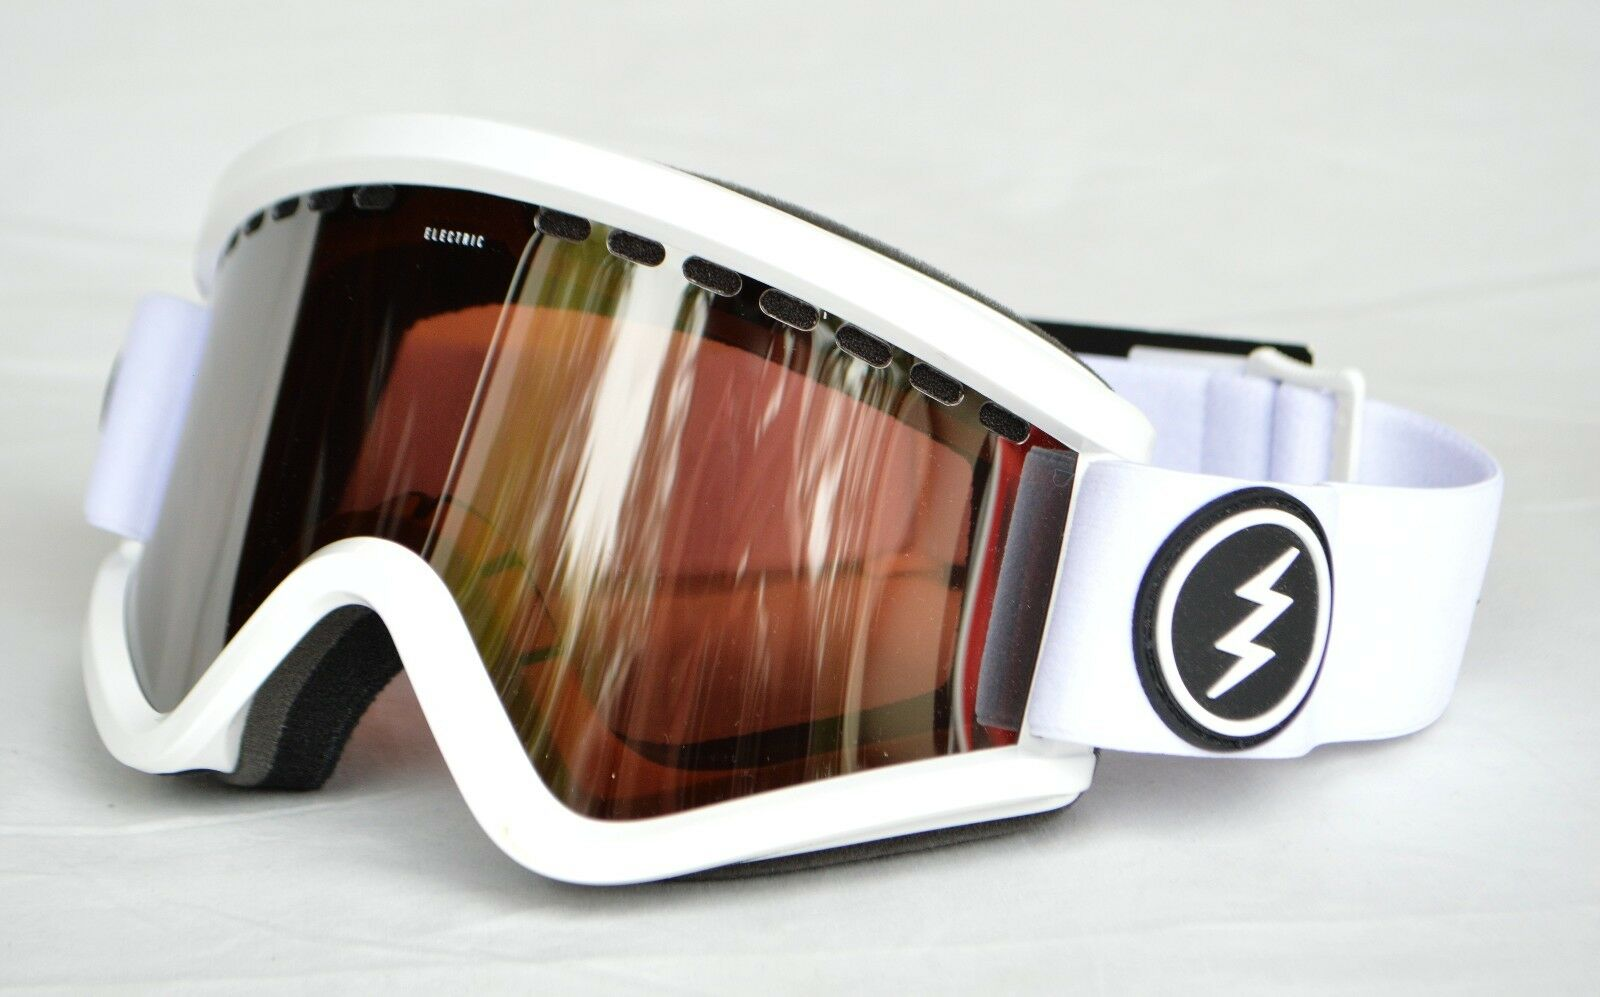 2018 NWT ELECTRIC EGV SNOWBOARD GOGGLES  Gloss White   Bpink lightweight